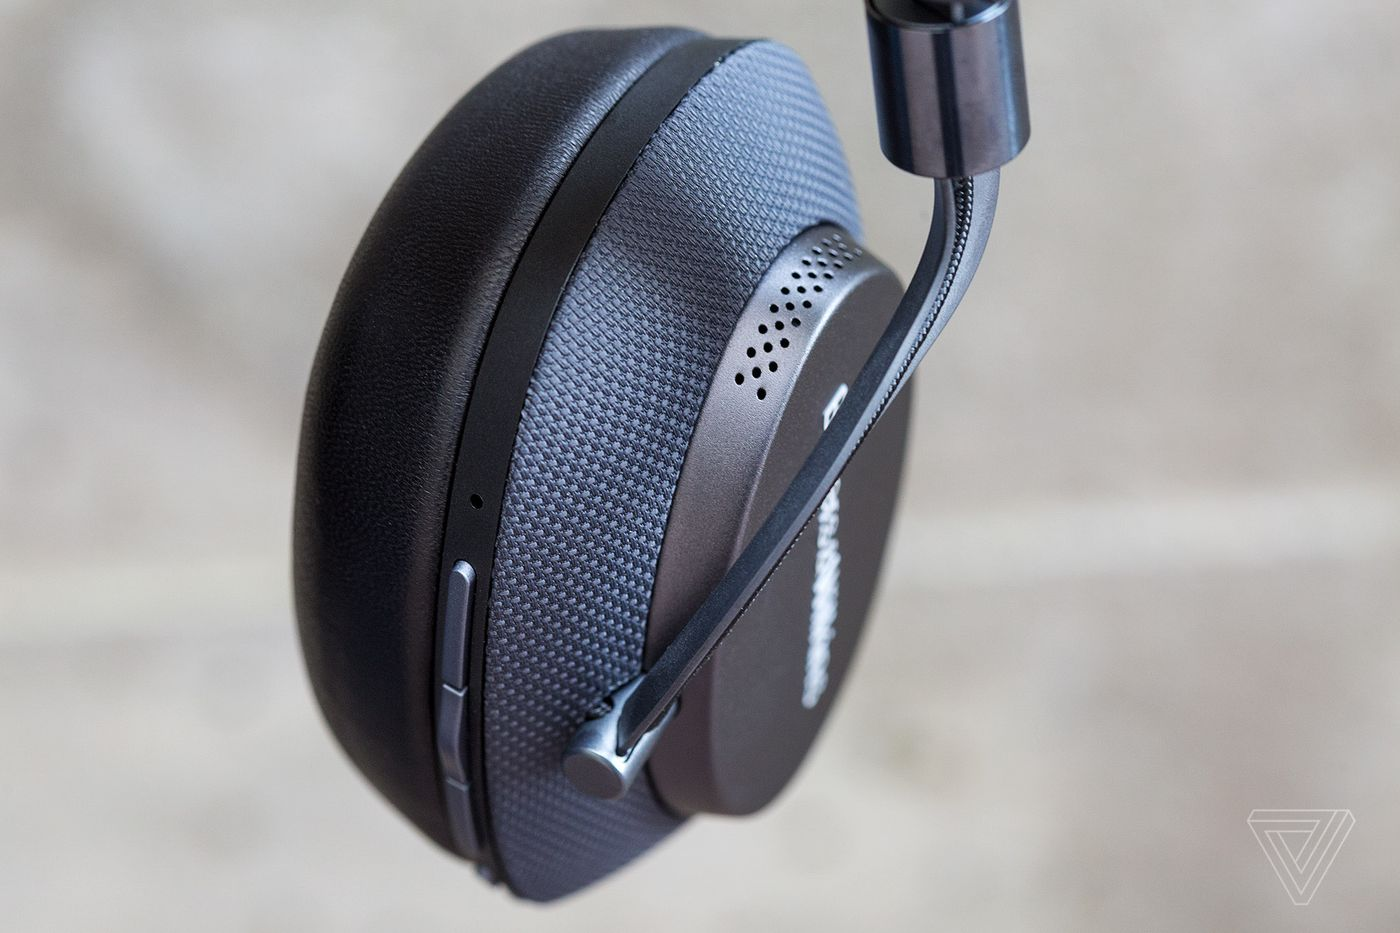 online retailer cheap for sale great look Bowers & Wilkins PX review: wireless noise-canceling nirvana - The ...